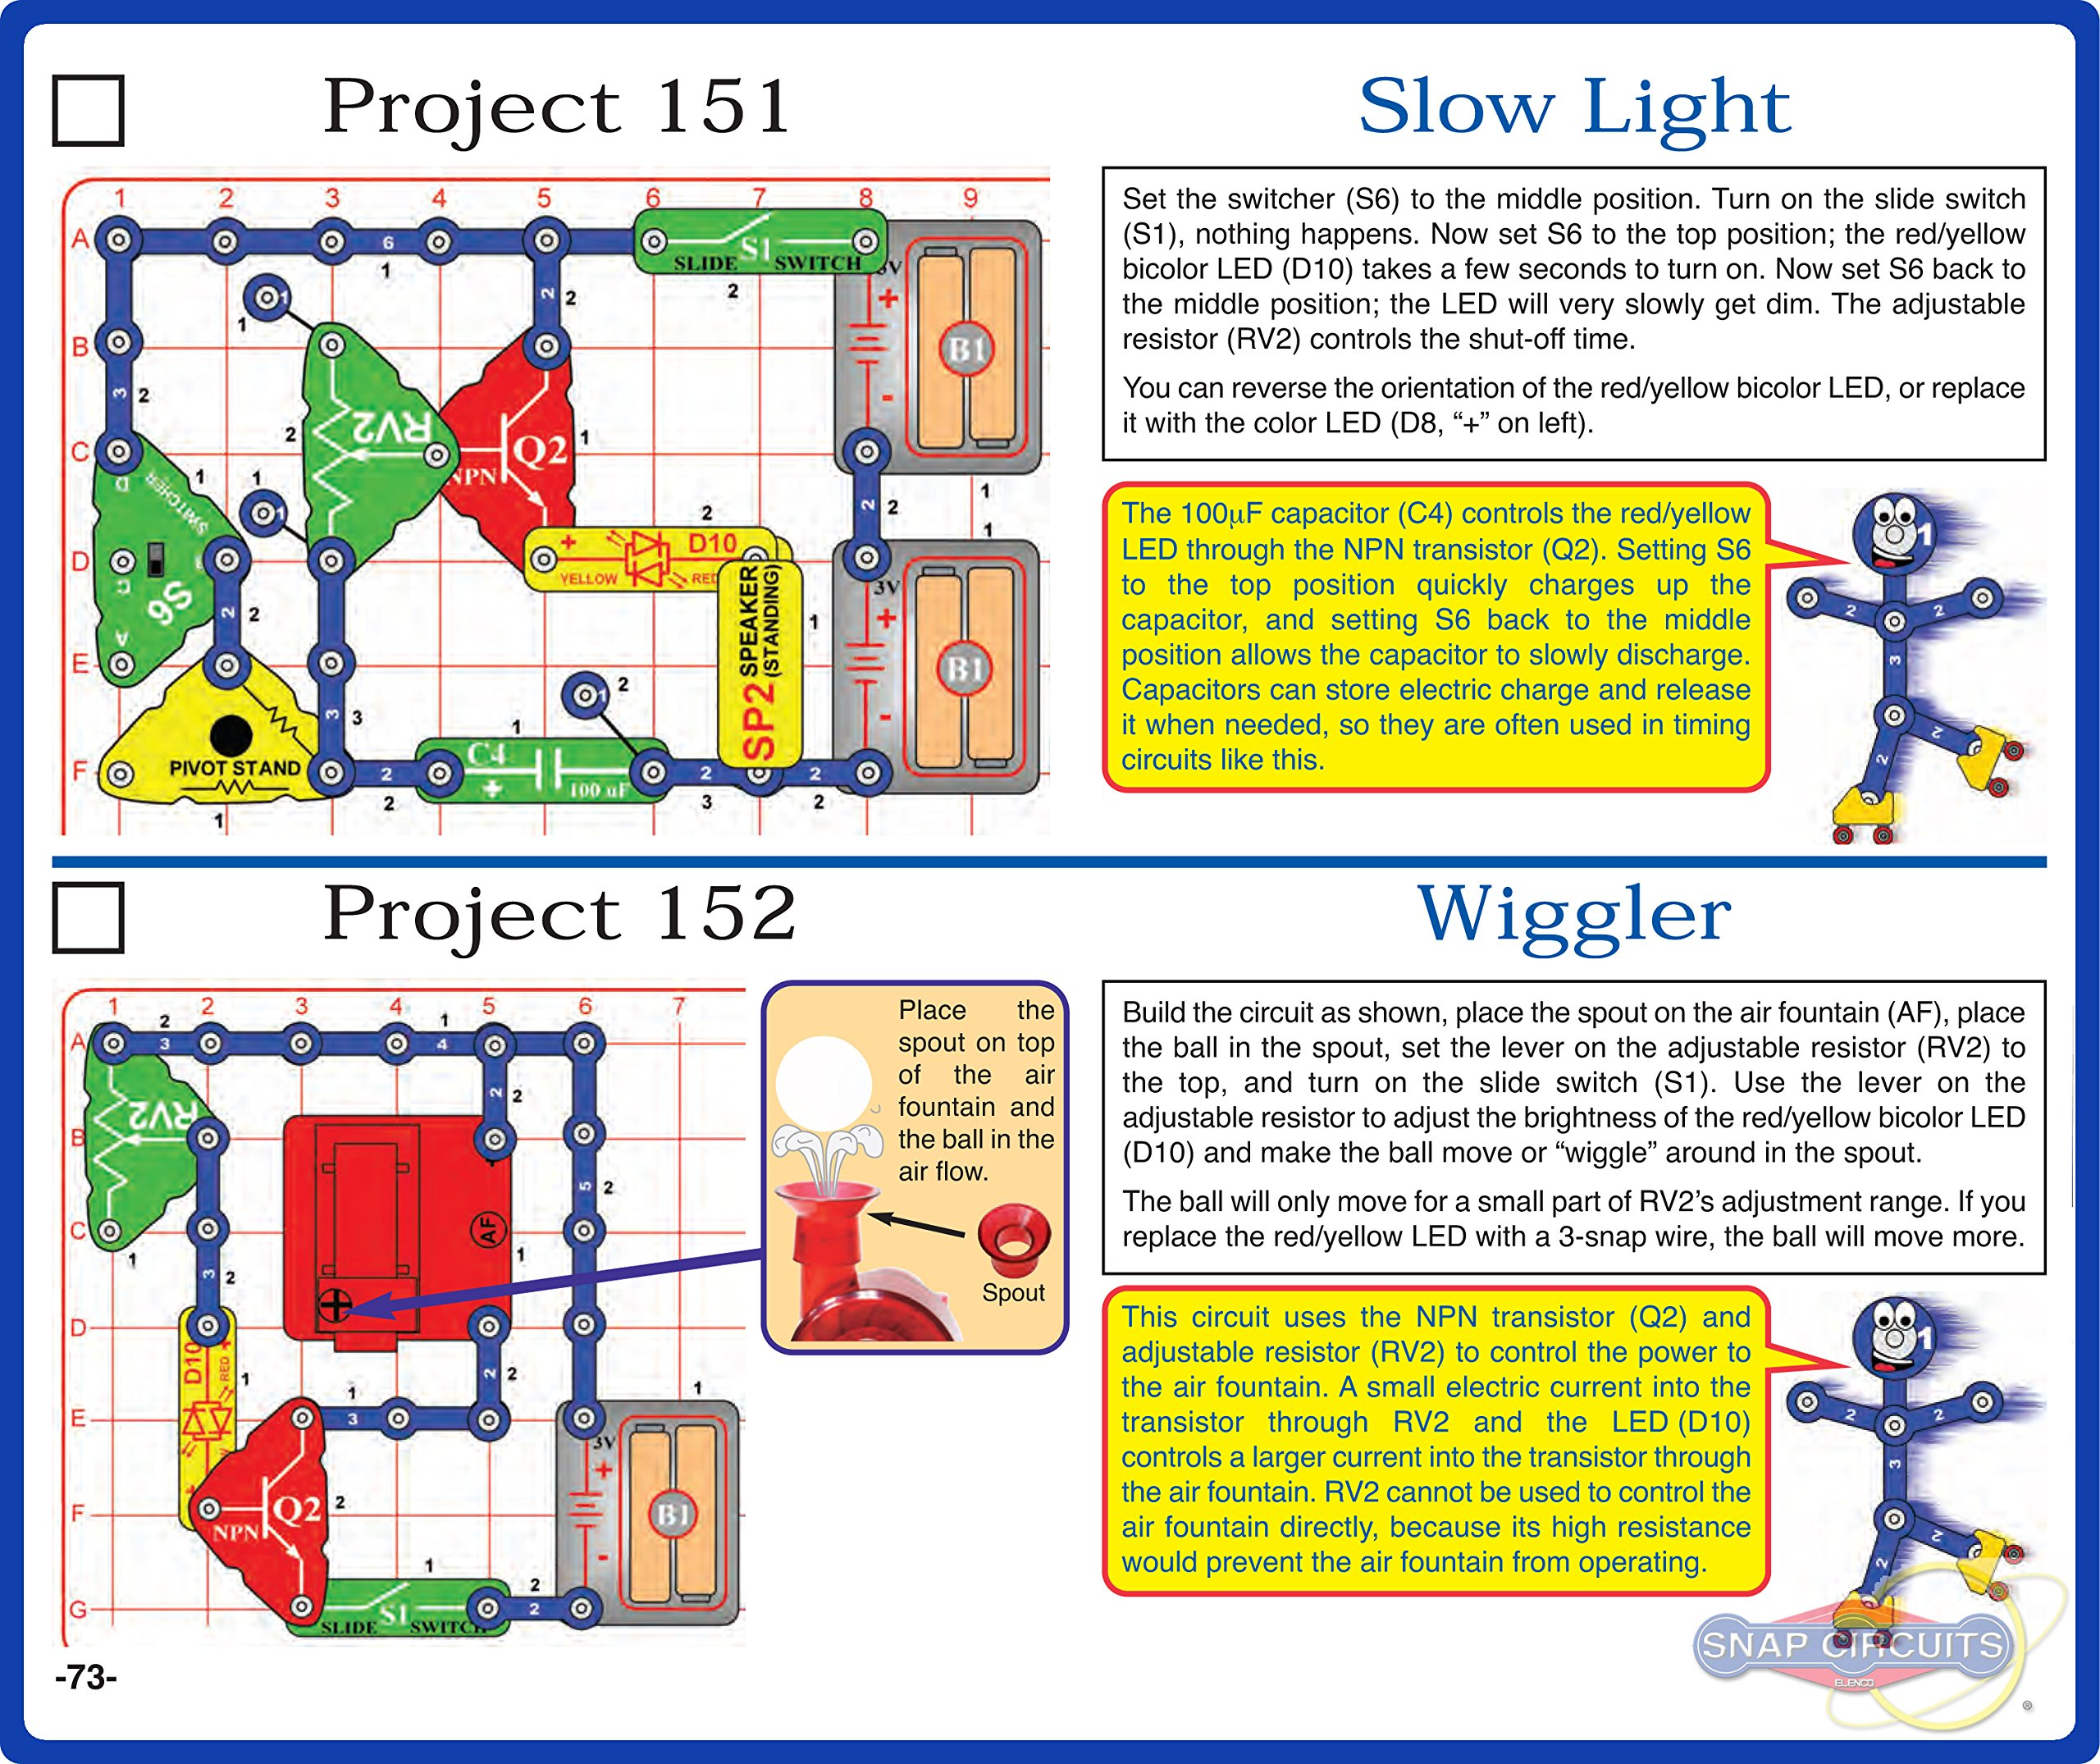 Snap Circuits Motion Electronics Exploration Kit | Over 165 Exciting STEM Projects | 4-Color Project Manual | 50+ Snap Modules | Unlimited Fun by Snap Circuits (Image #6)